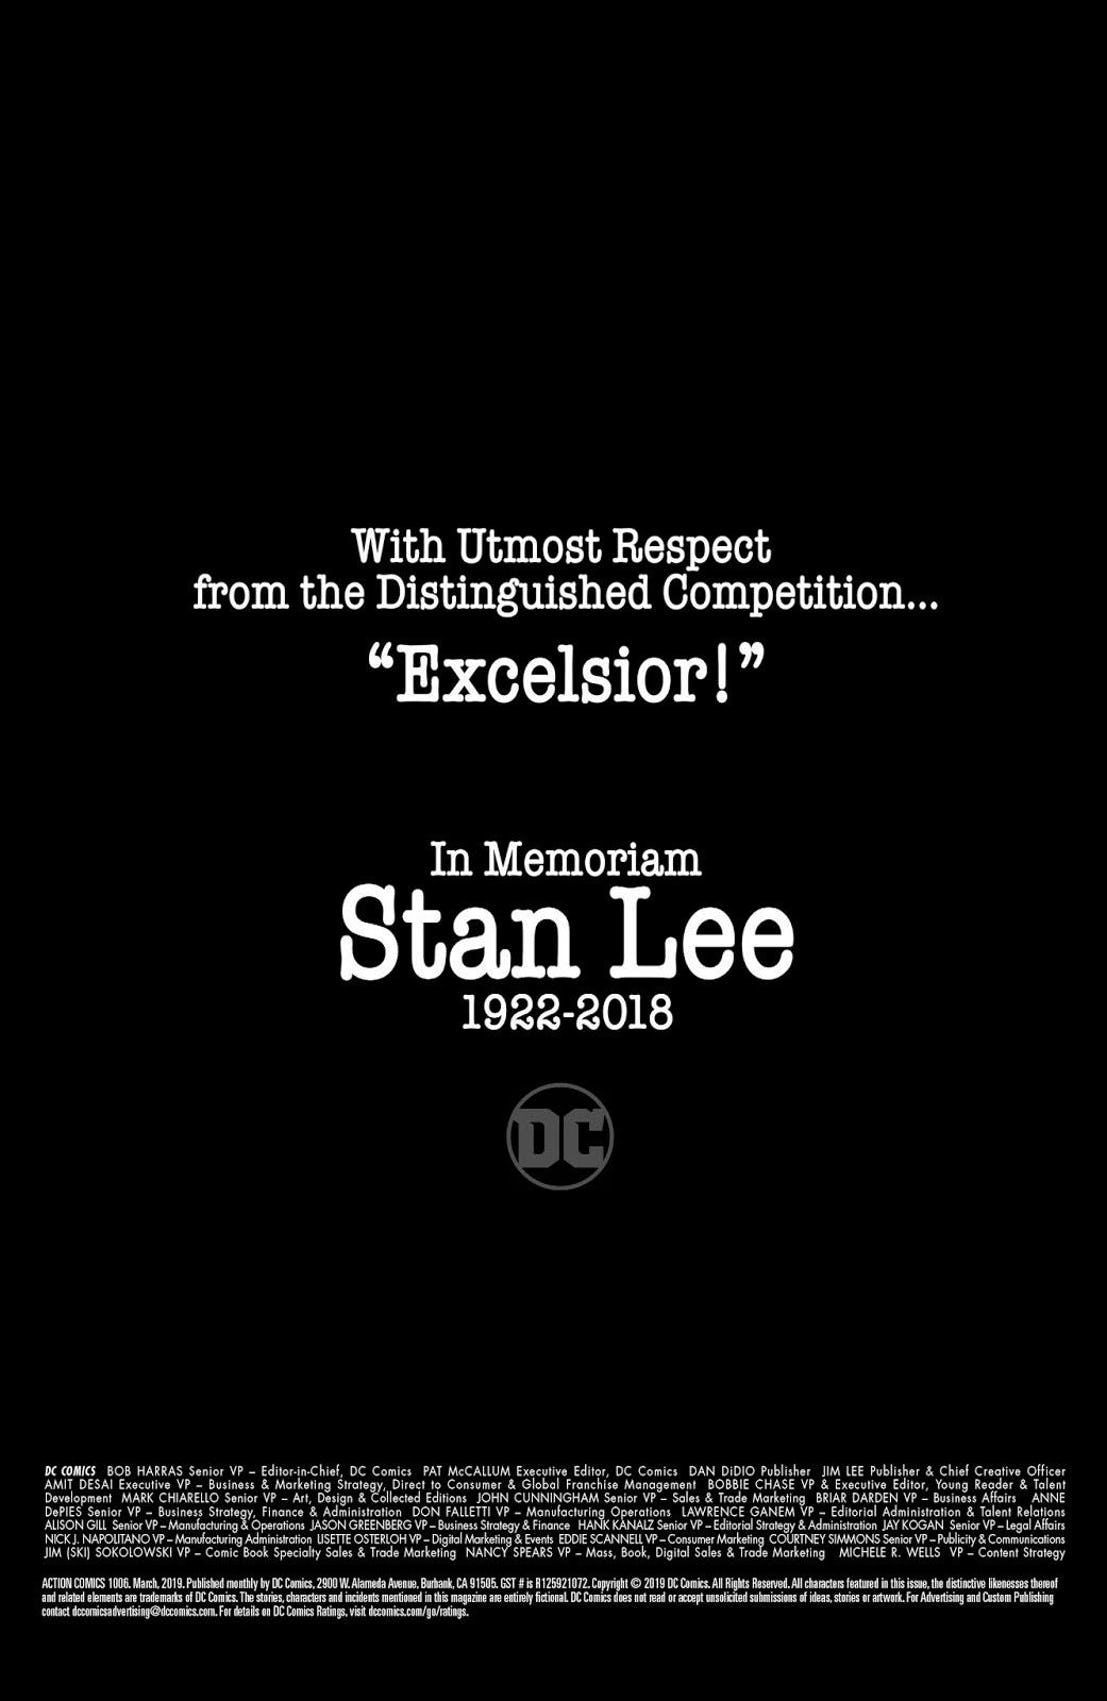 DC Stan Lee Tribute